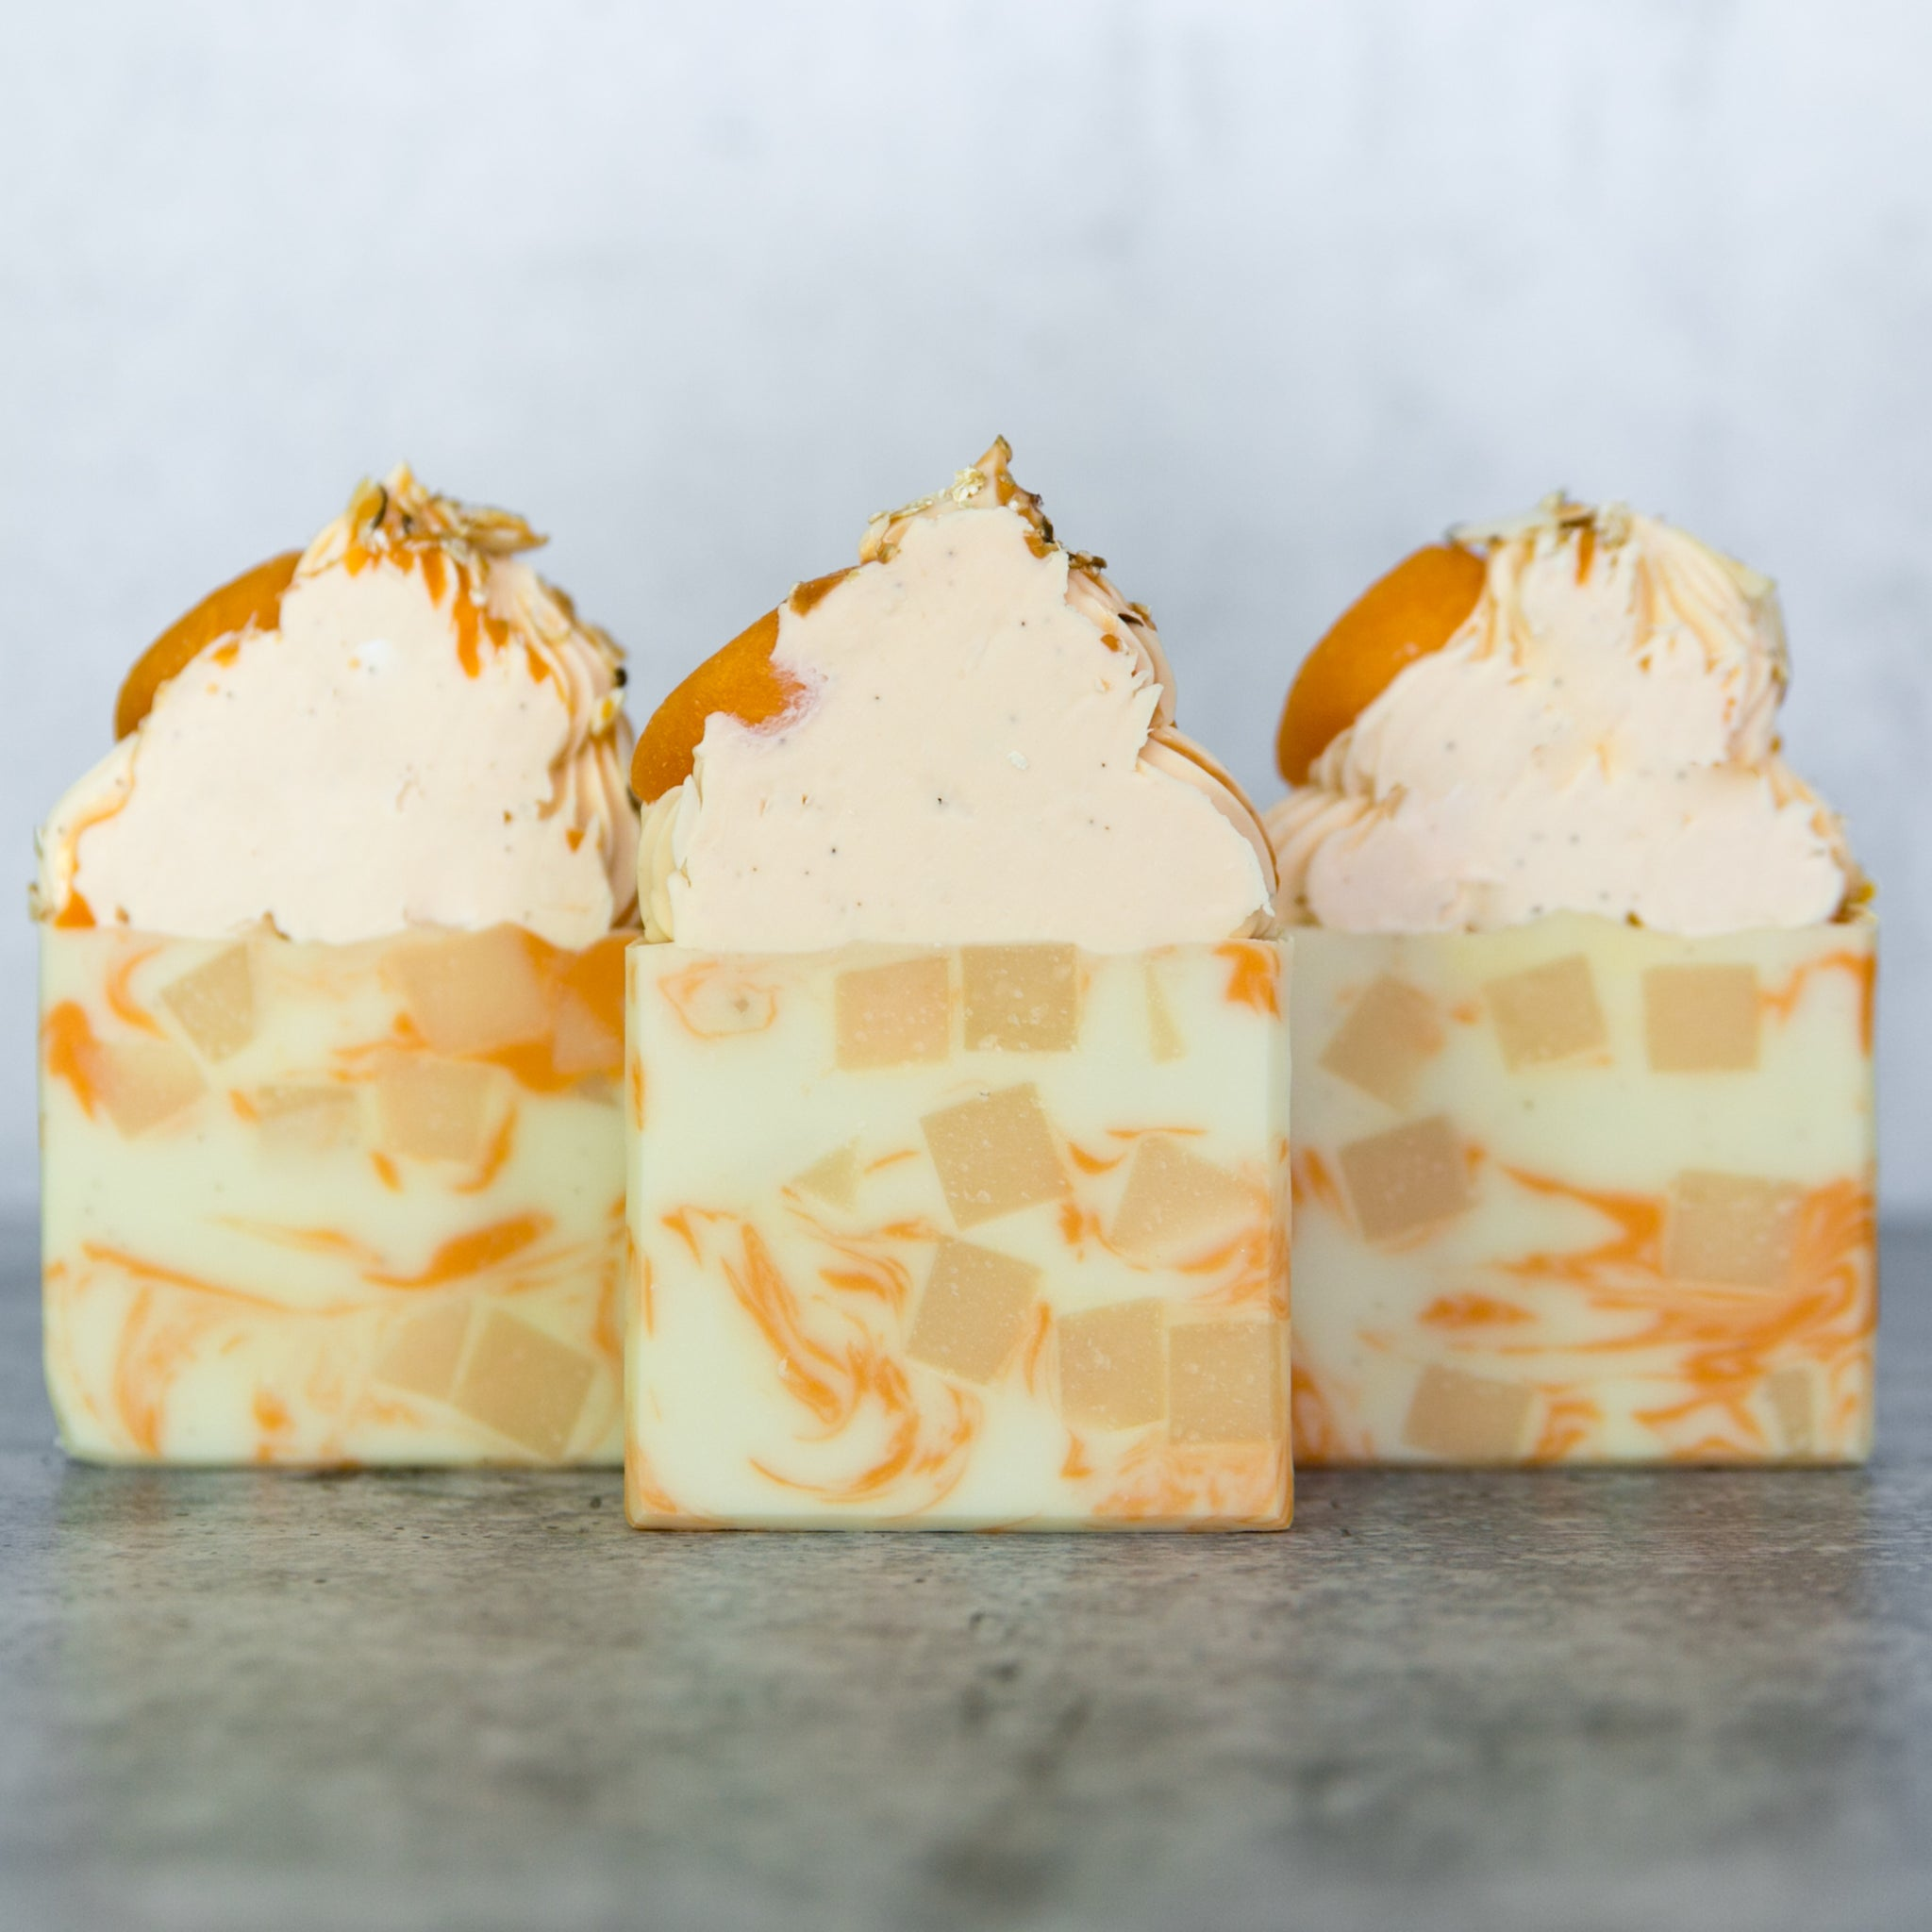 Toasted Almond & Peach Pastries Artisan Soap